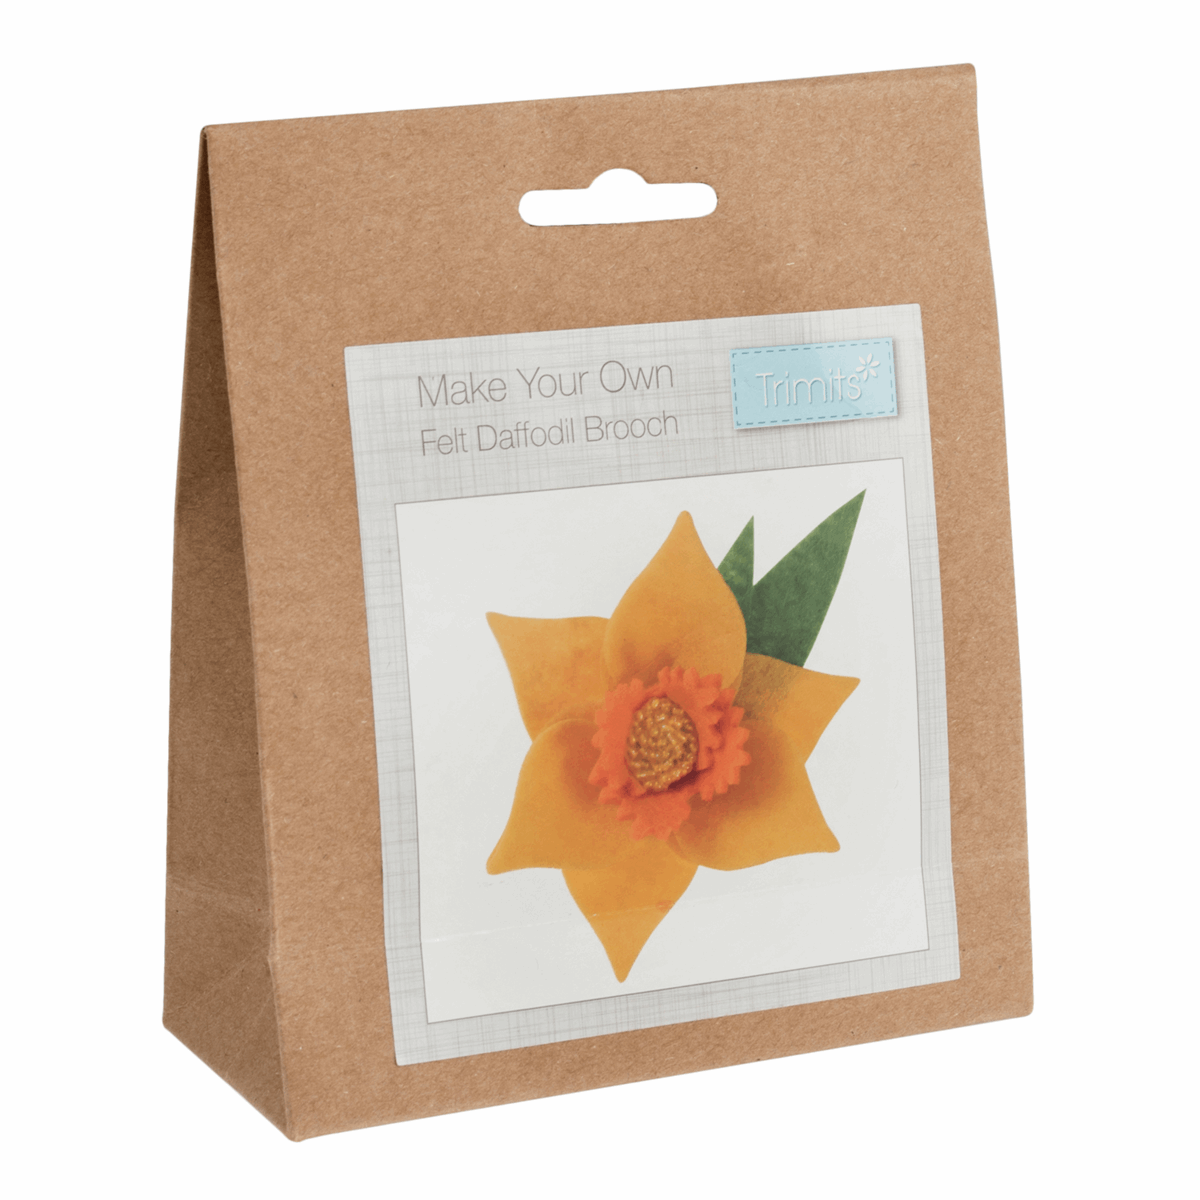 Picture of Felt Decoration Kit: Daffodil Brooch